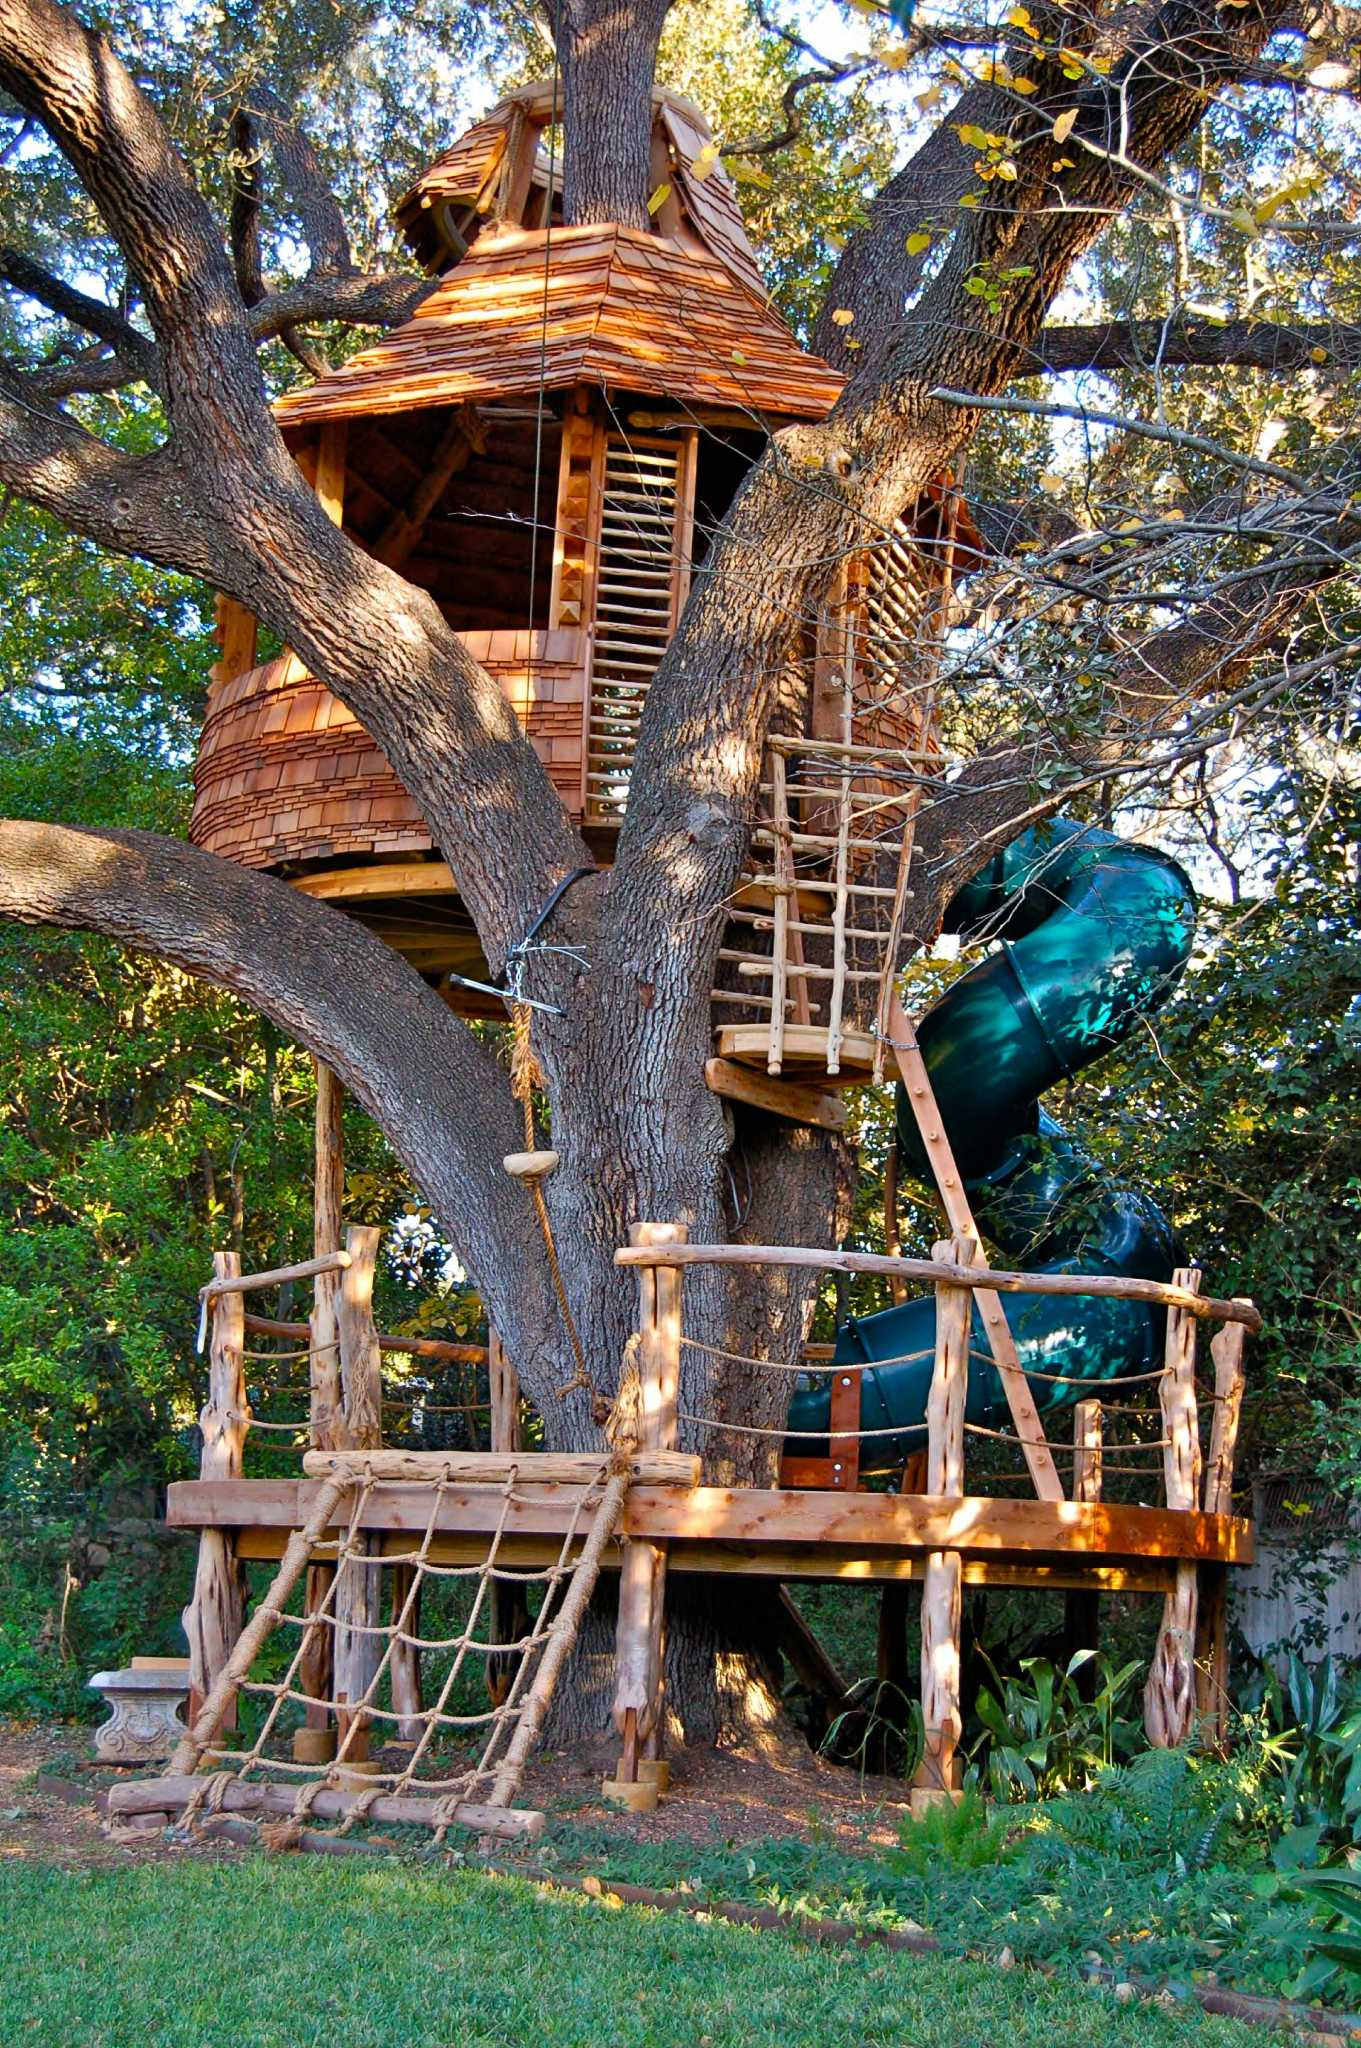 S A Treehouse Creator Shares His Work With The Master Expressnews Com